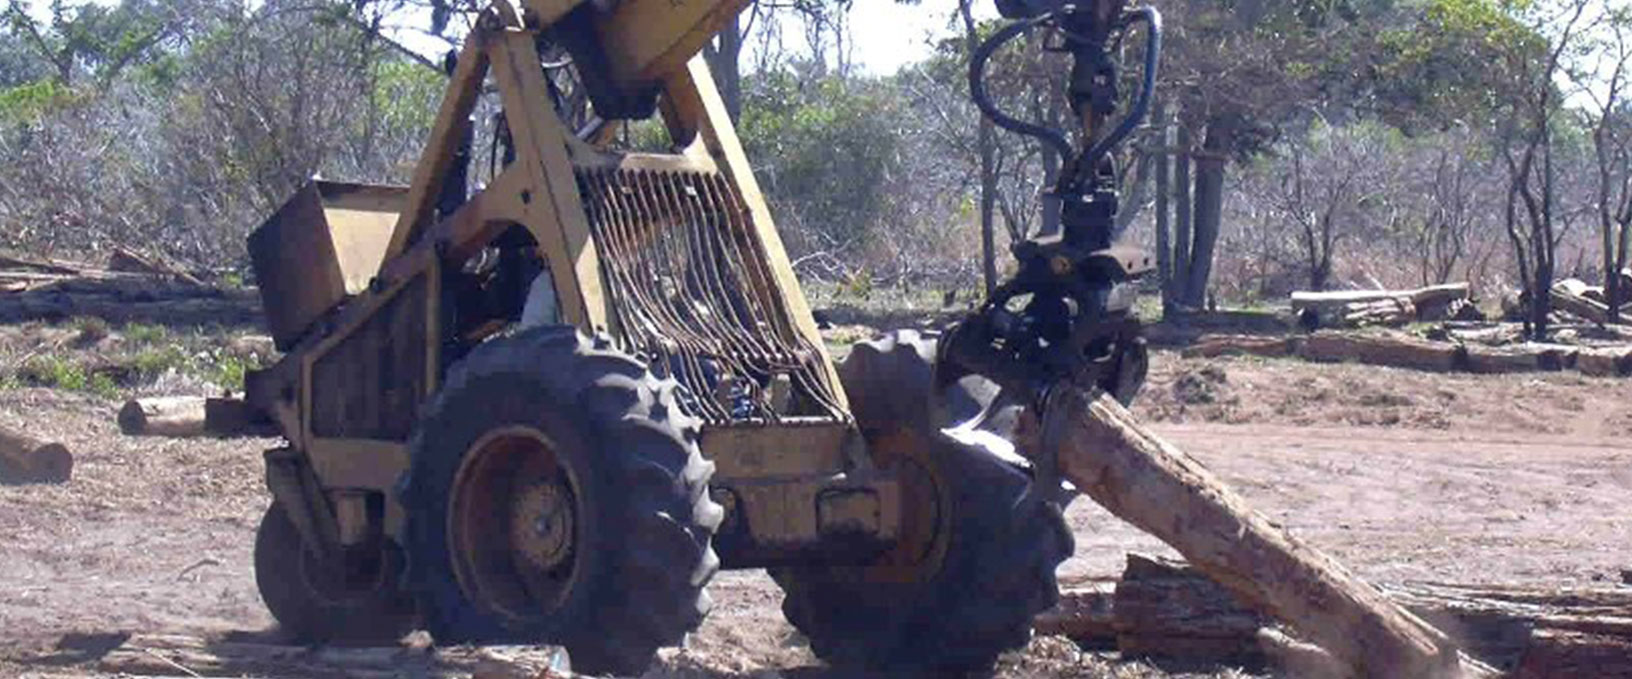 02. Grading of logs at collection point